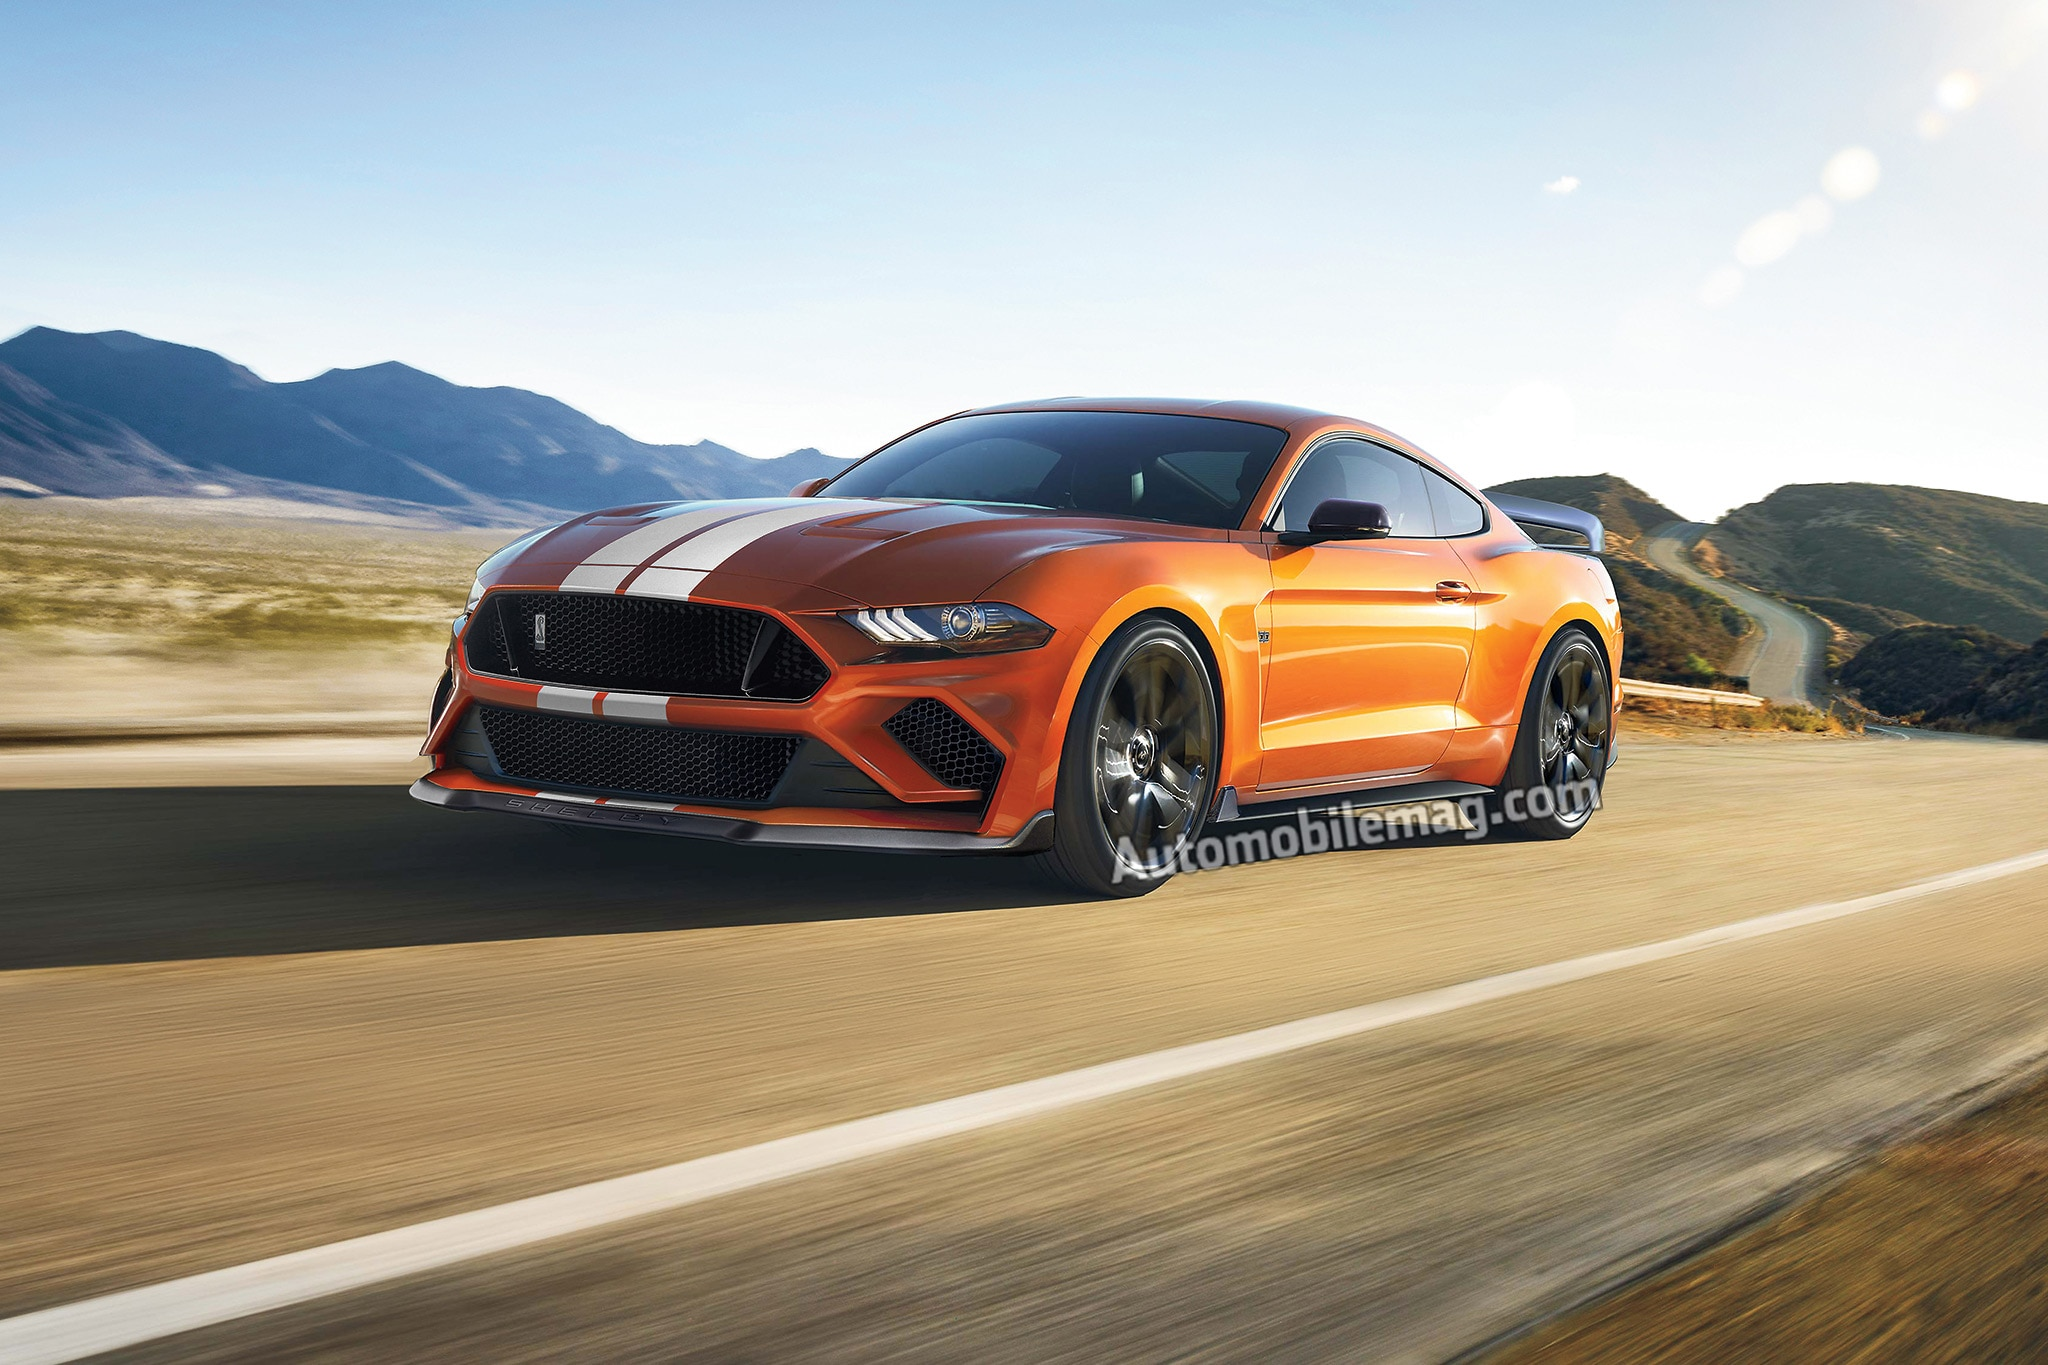 Best Car Wallpaper Com 2019 Ford Mustang Shelby Gt500 Confirmed With 700